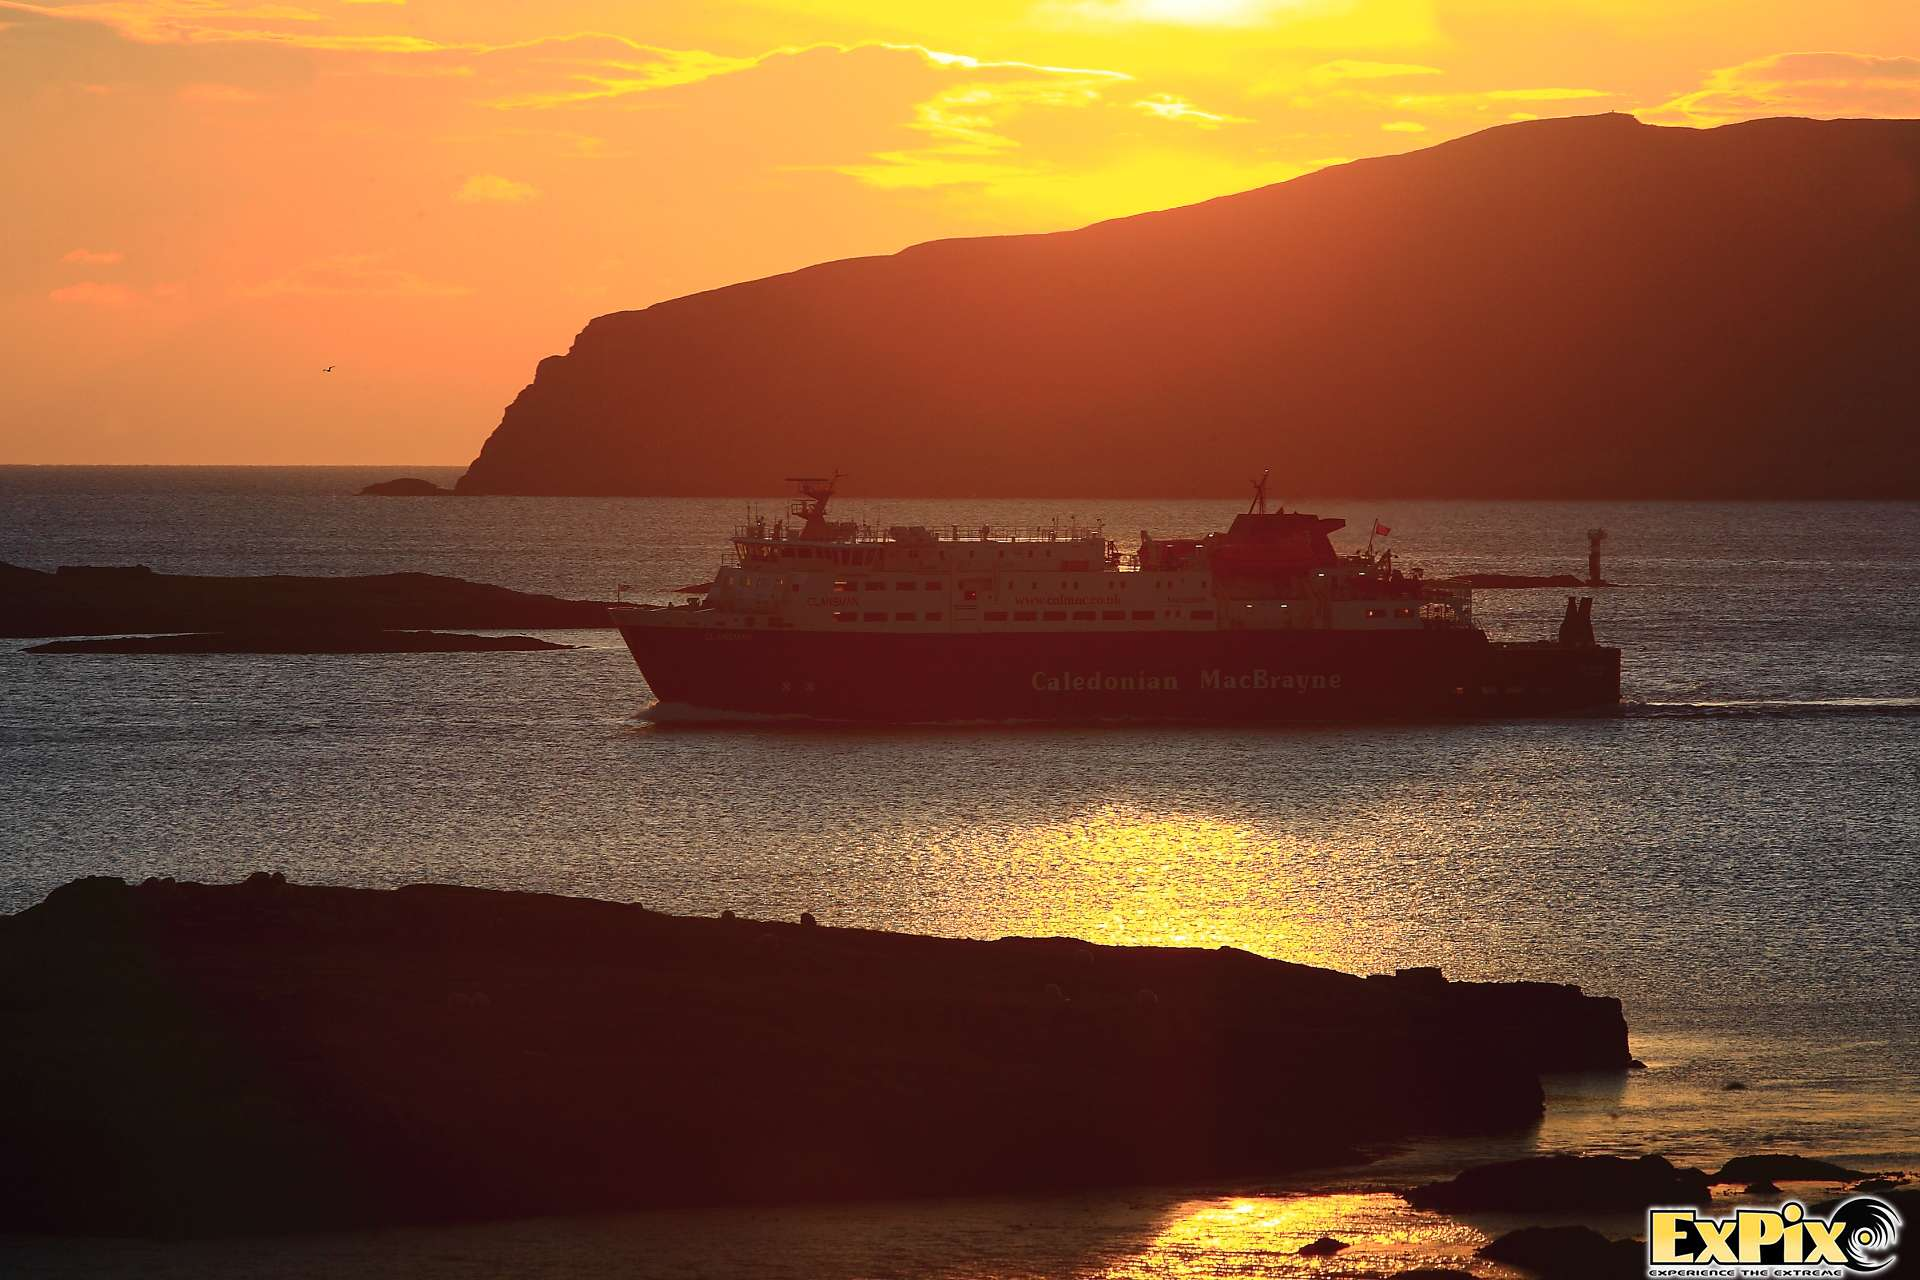 Calmac ferry arriving in barra